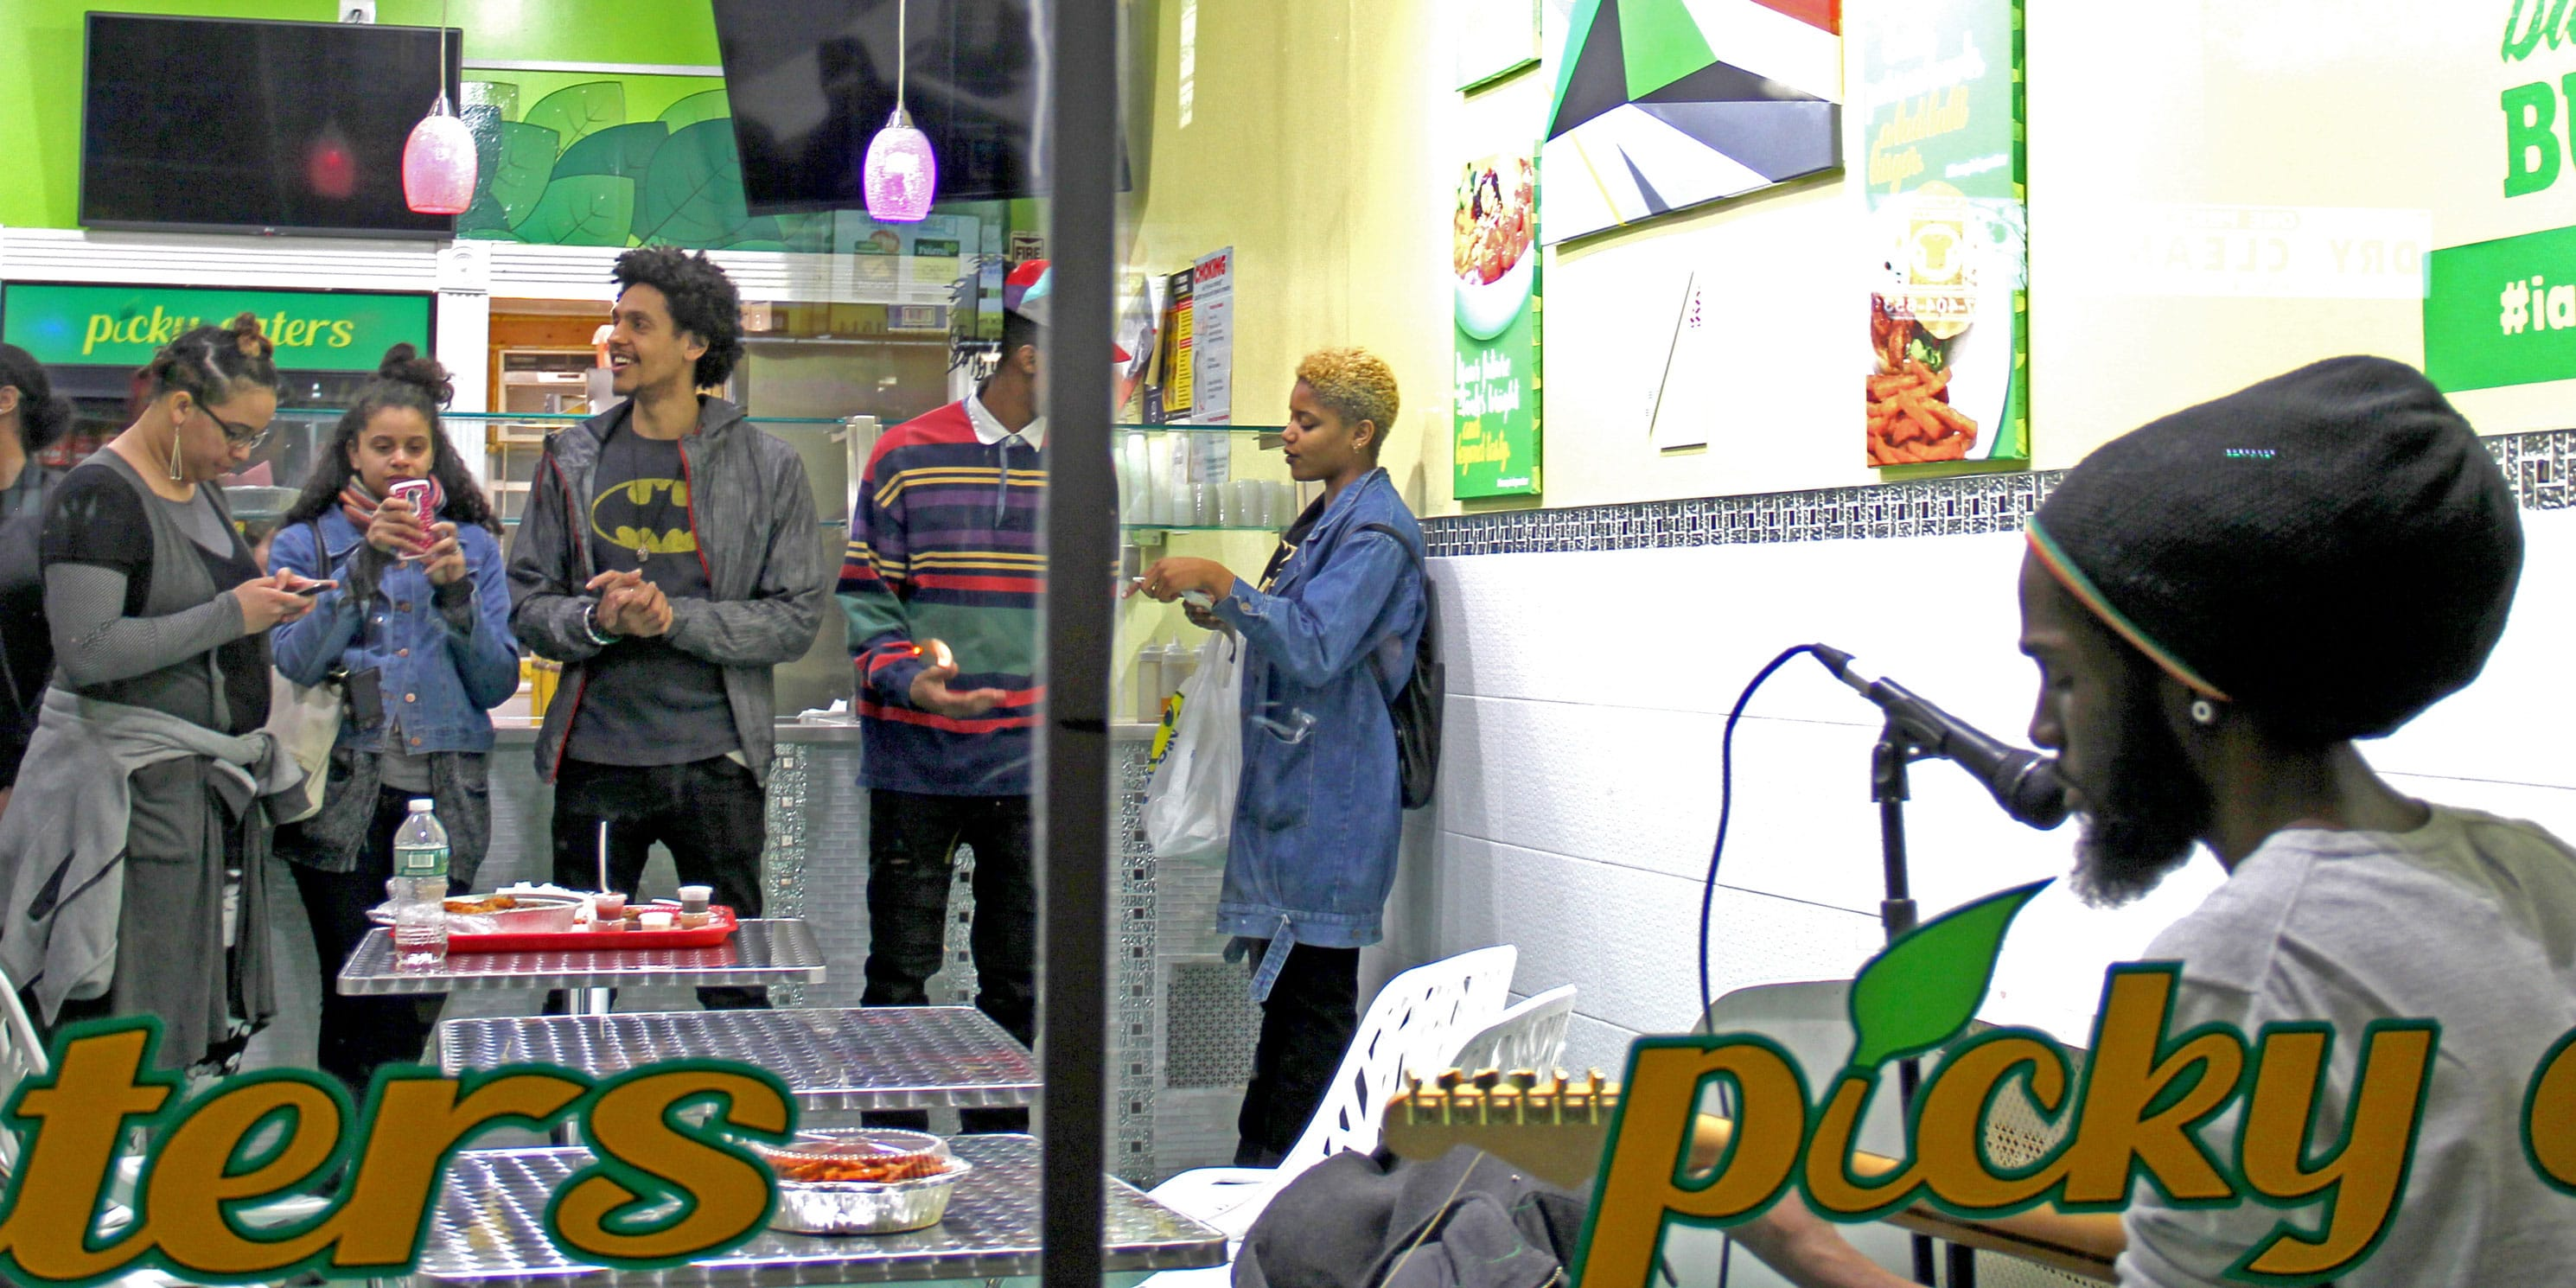 people listen to a musician in a takeaway food shop